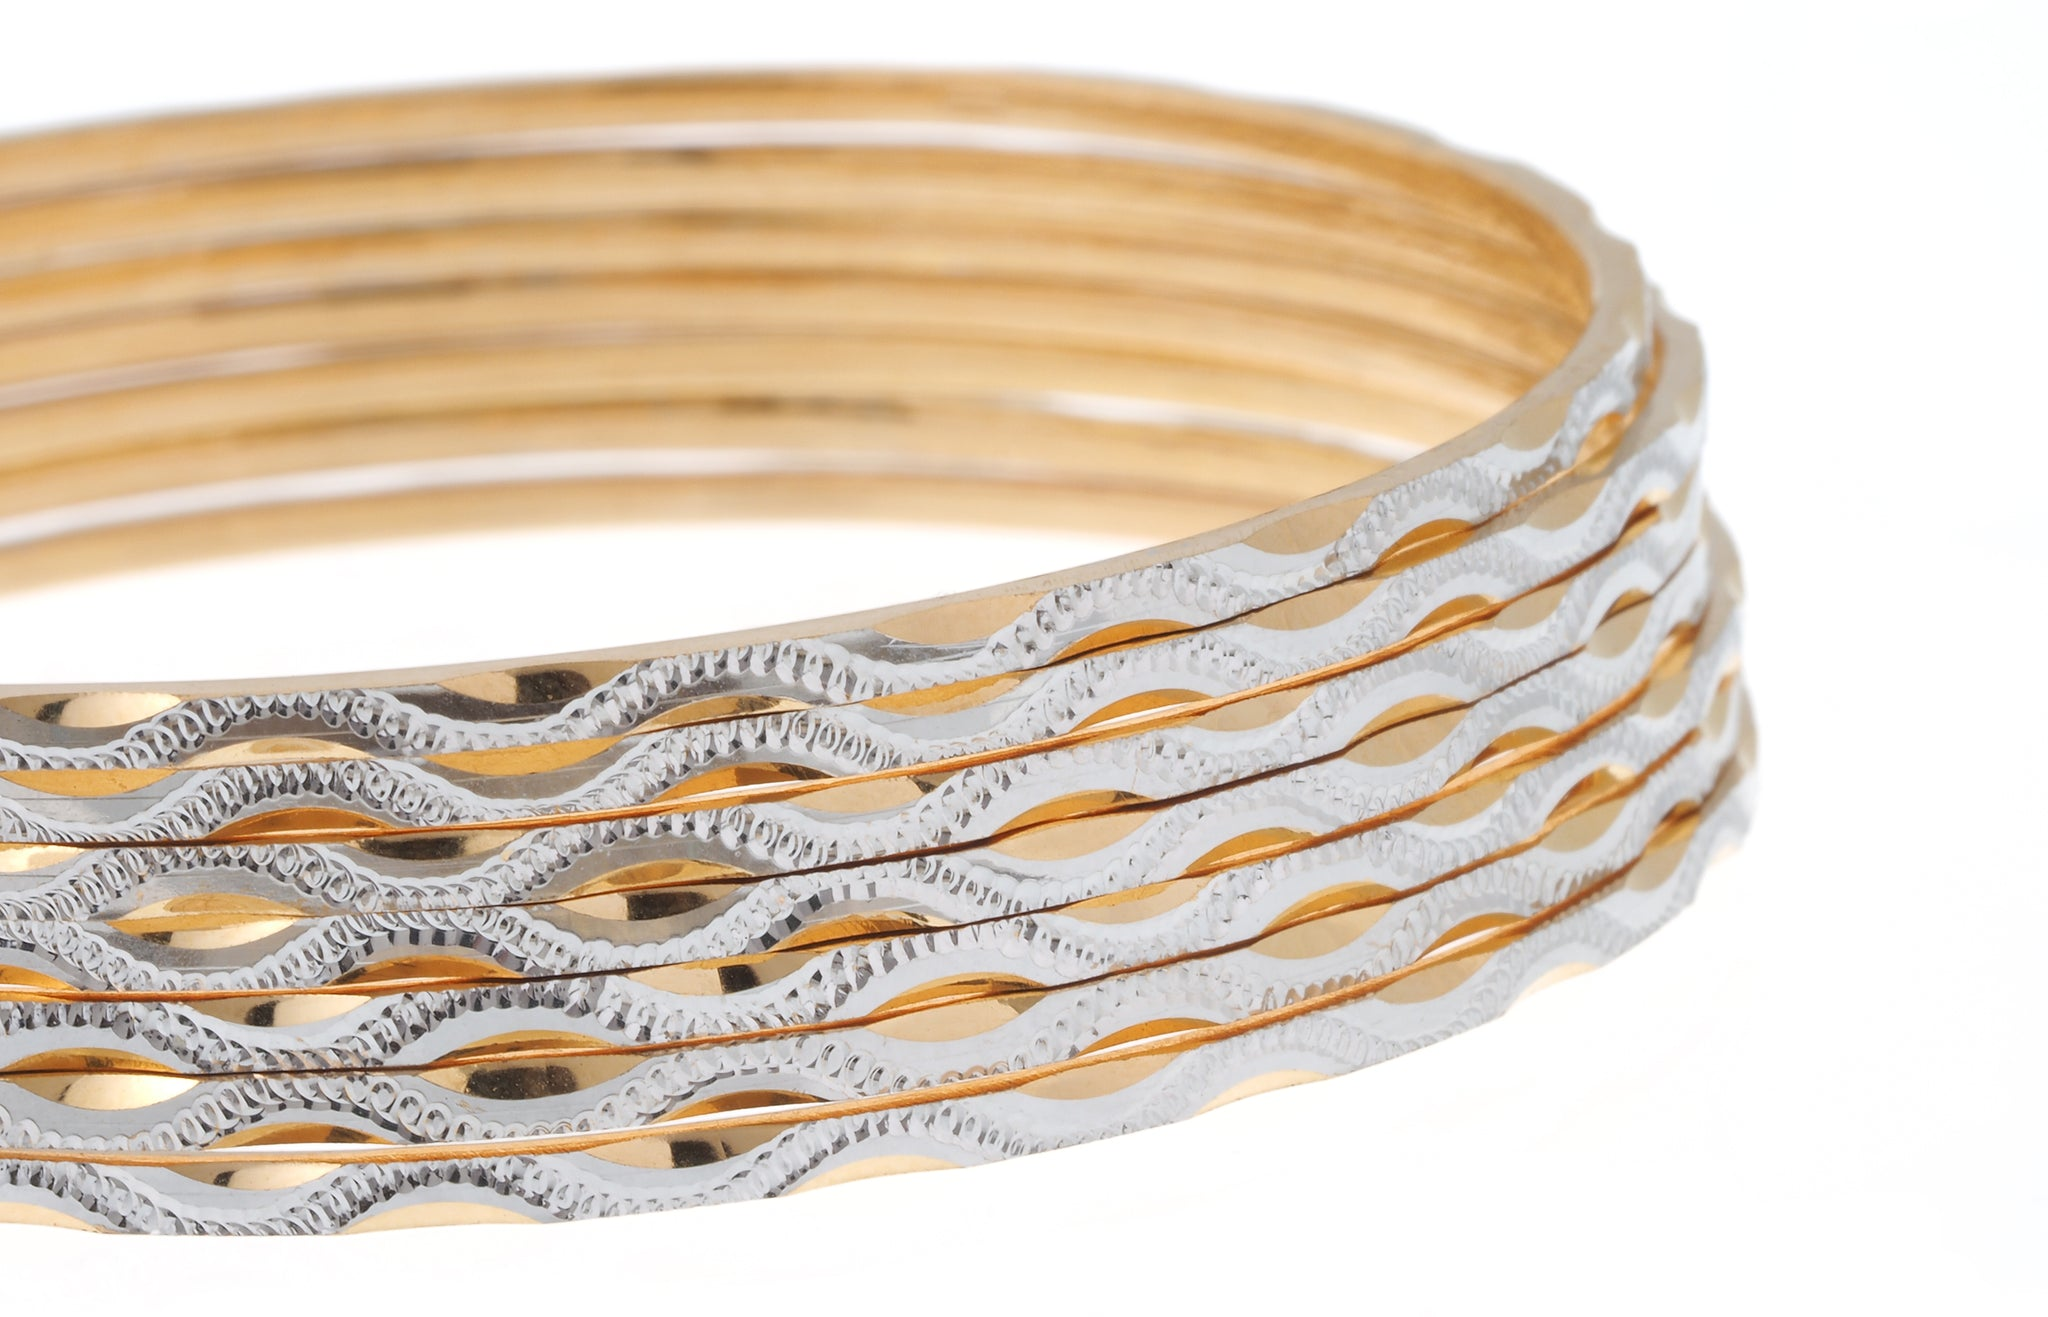 Set of Seven 22ct Gold Diamond Milled Bangles with Rhodium Design (B-7134)